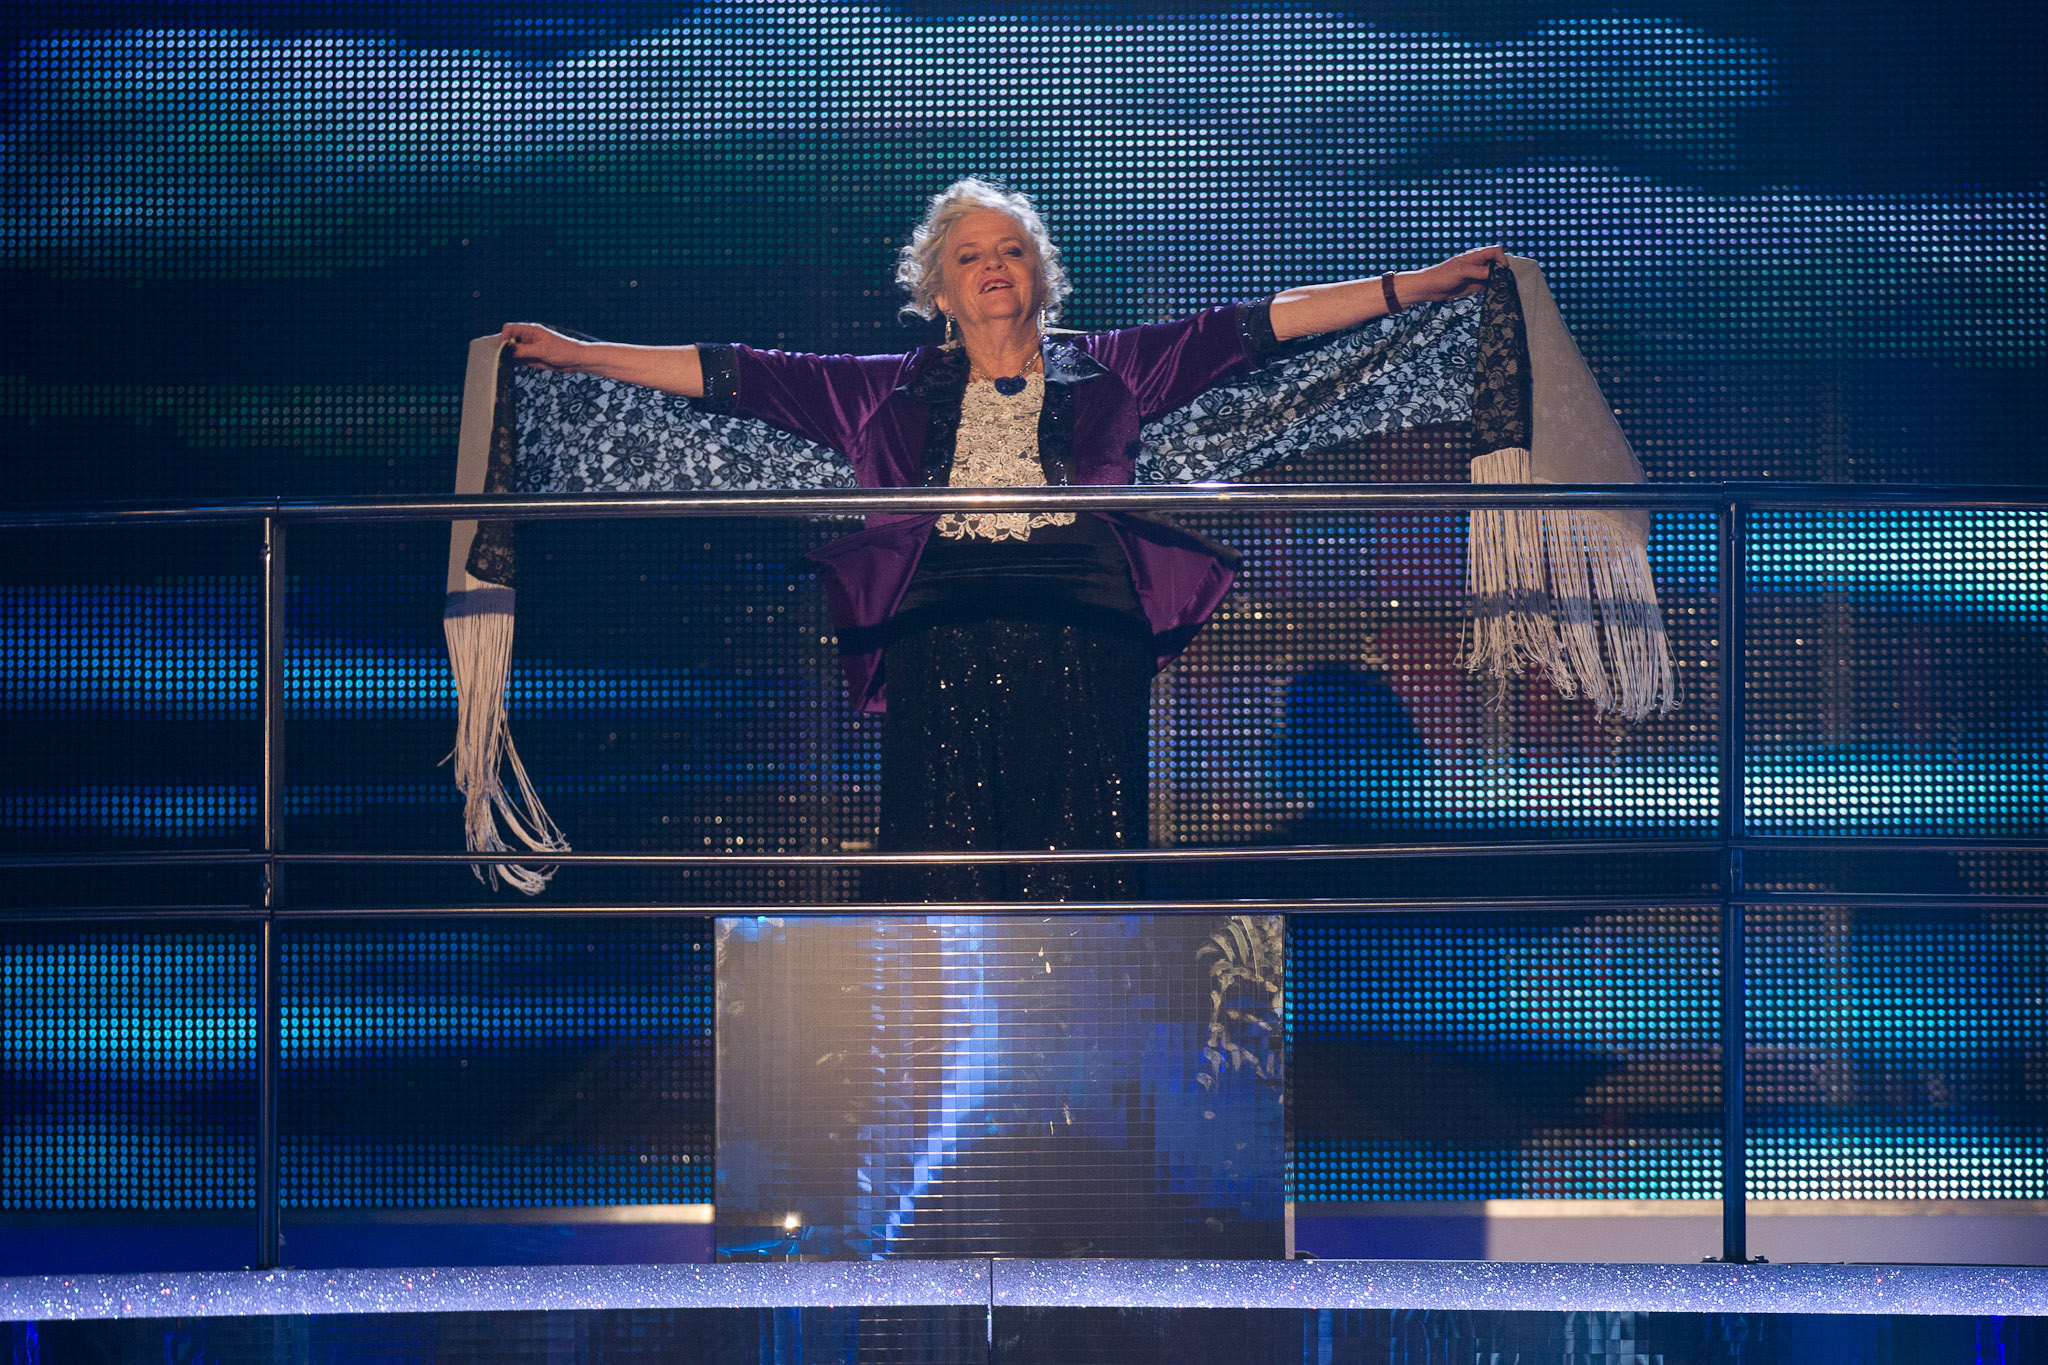 ballet news, dance, BBC, Strictly, Ann Widdecombe